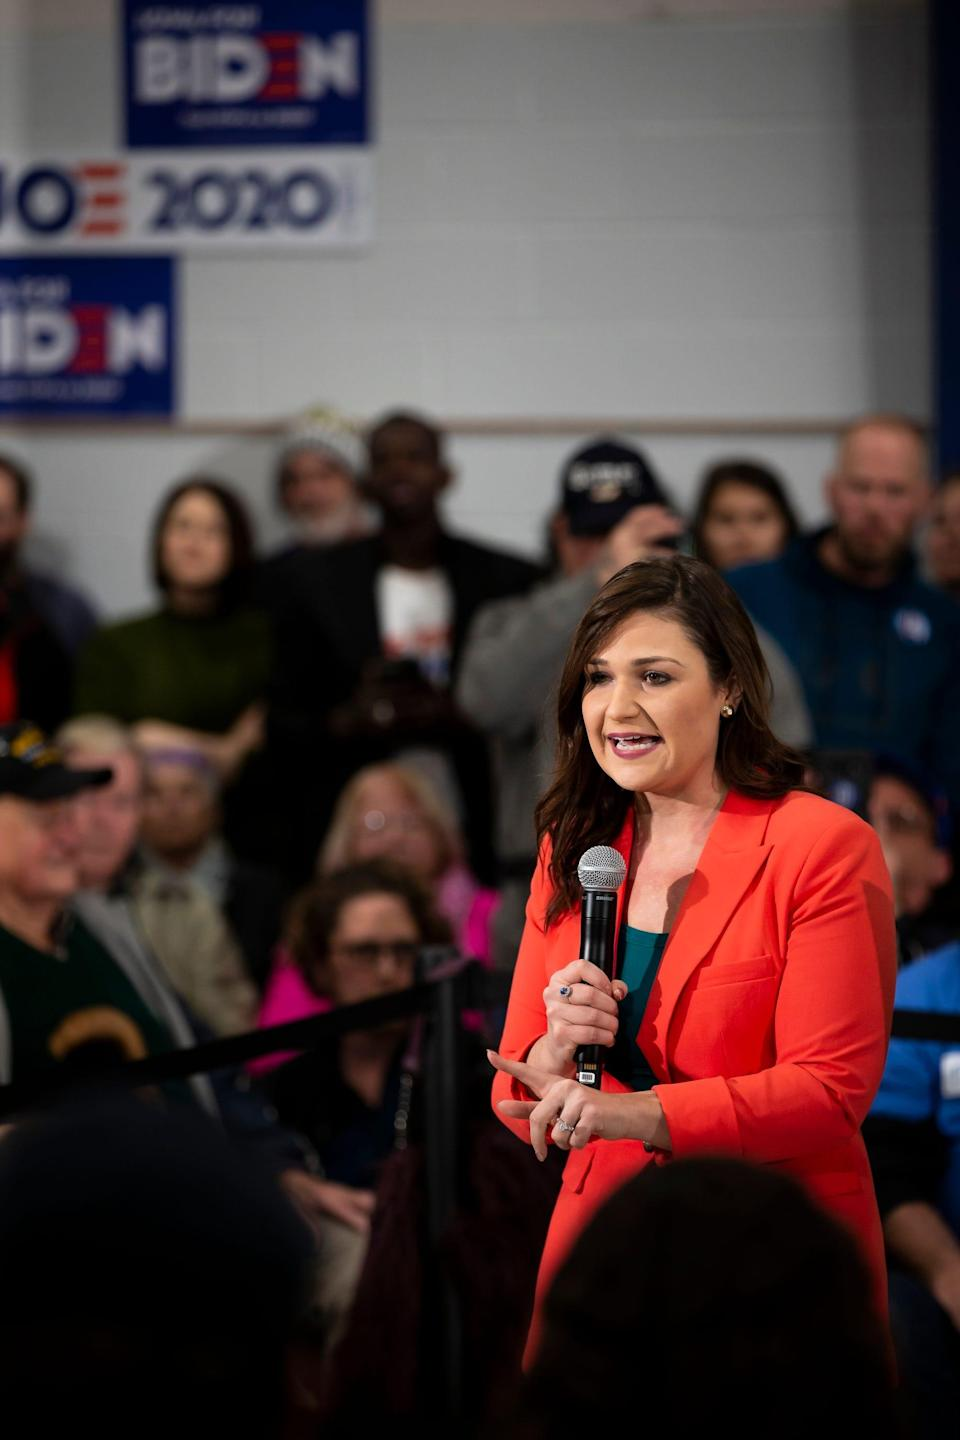 Democratic Congresswoman Abby Finkenauer introduces Former Vice-President and 2020 Democratic presidential candidate Joe Biden during a campaign event at McKinley Elementary school on Saturday, Jan. 4, 2020, in Des Moines.